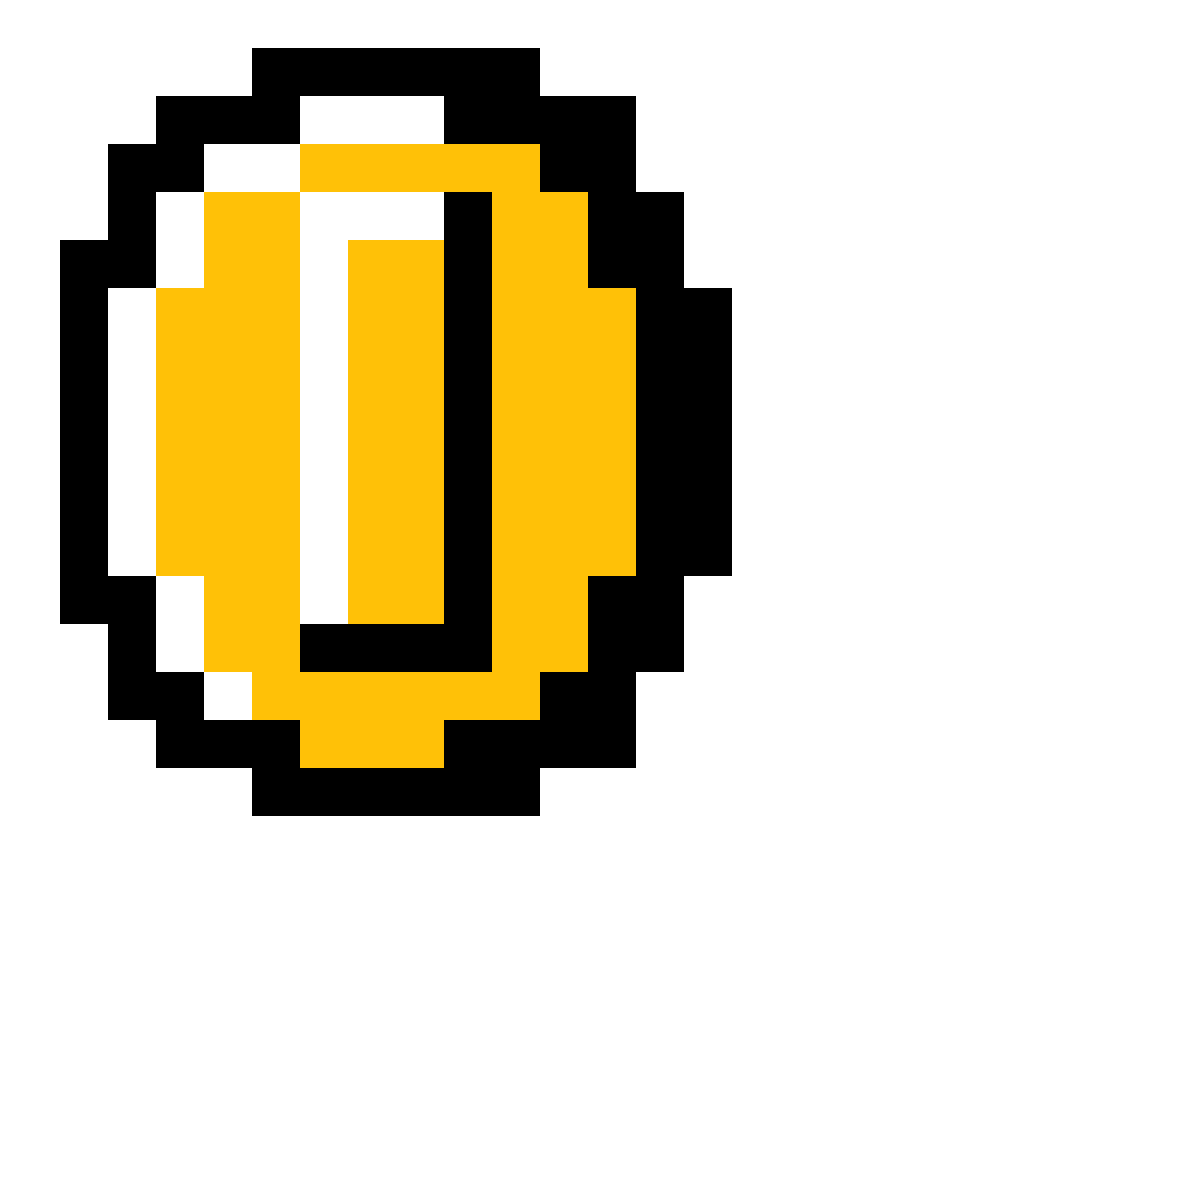 8 bit coin png. Pixilart mario by powerful